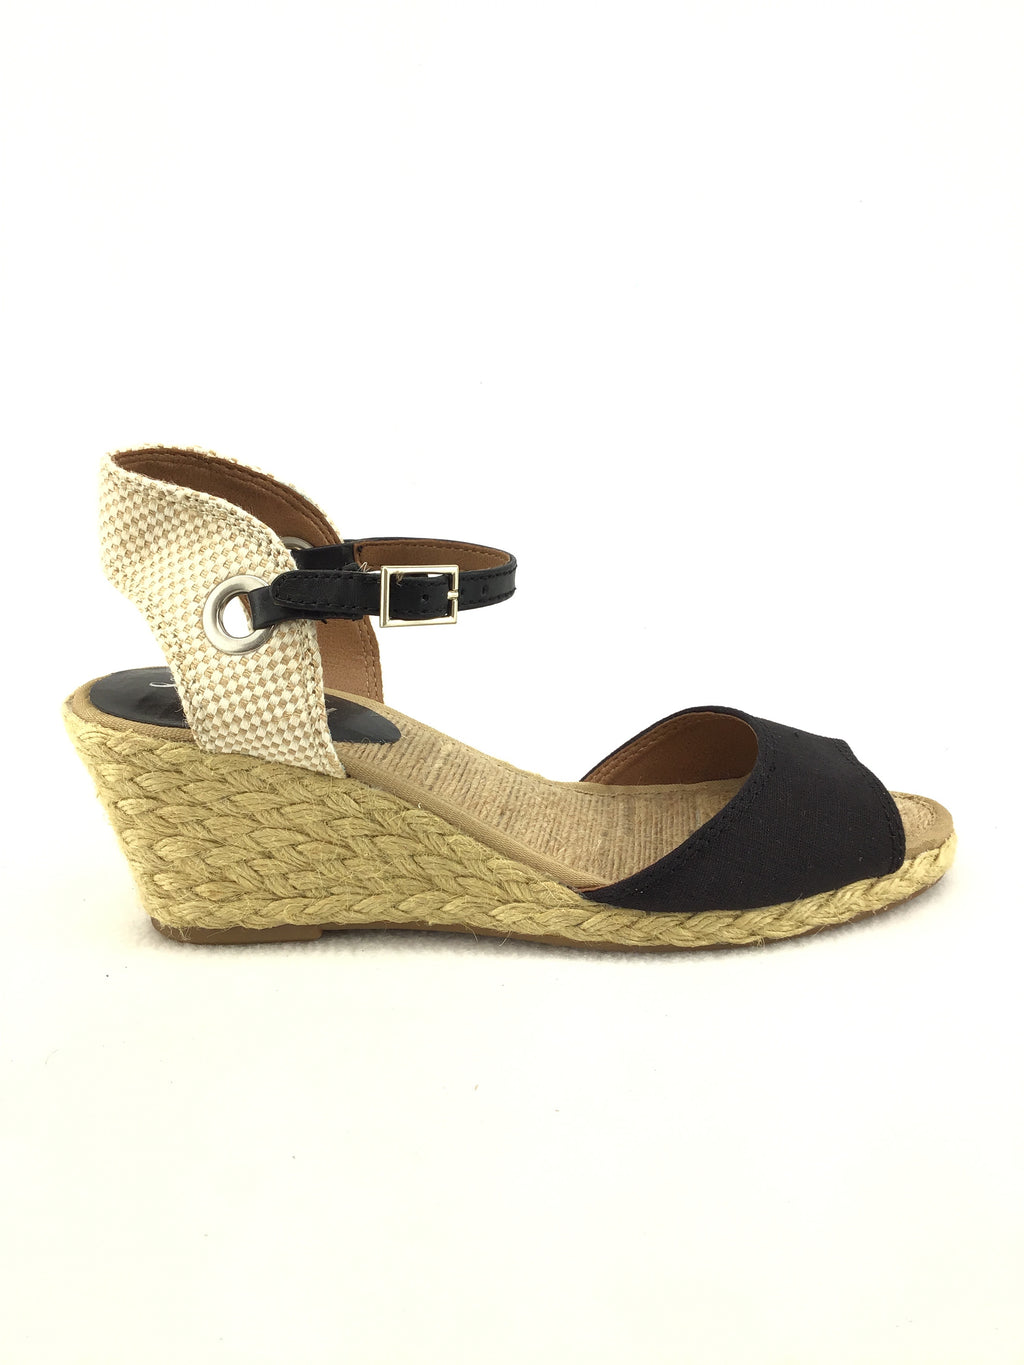 Lucky Brand Kyndra Wedge Sandals Size 7.5M